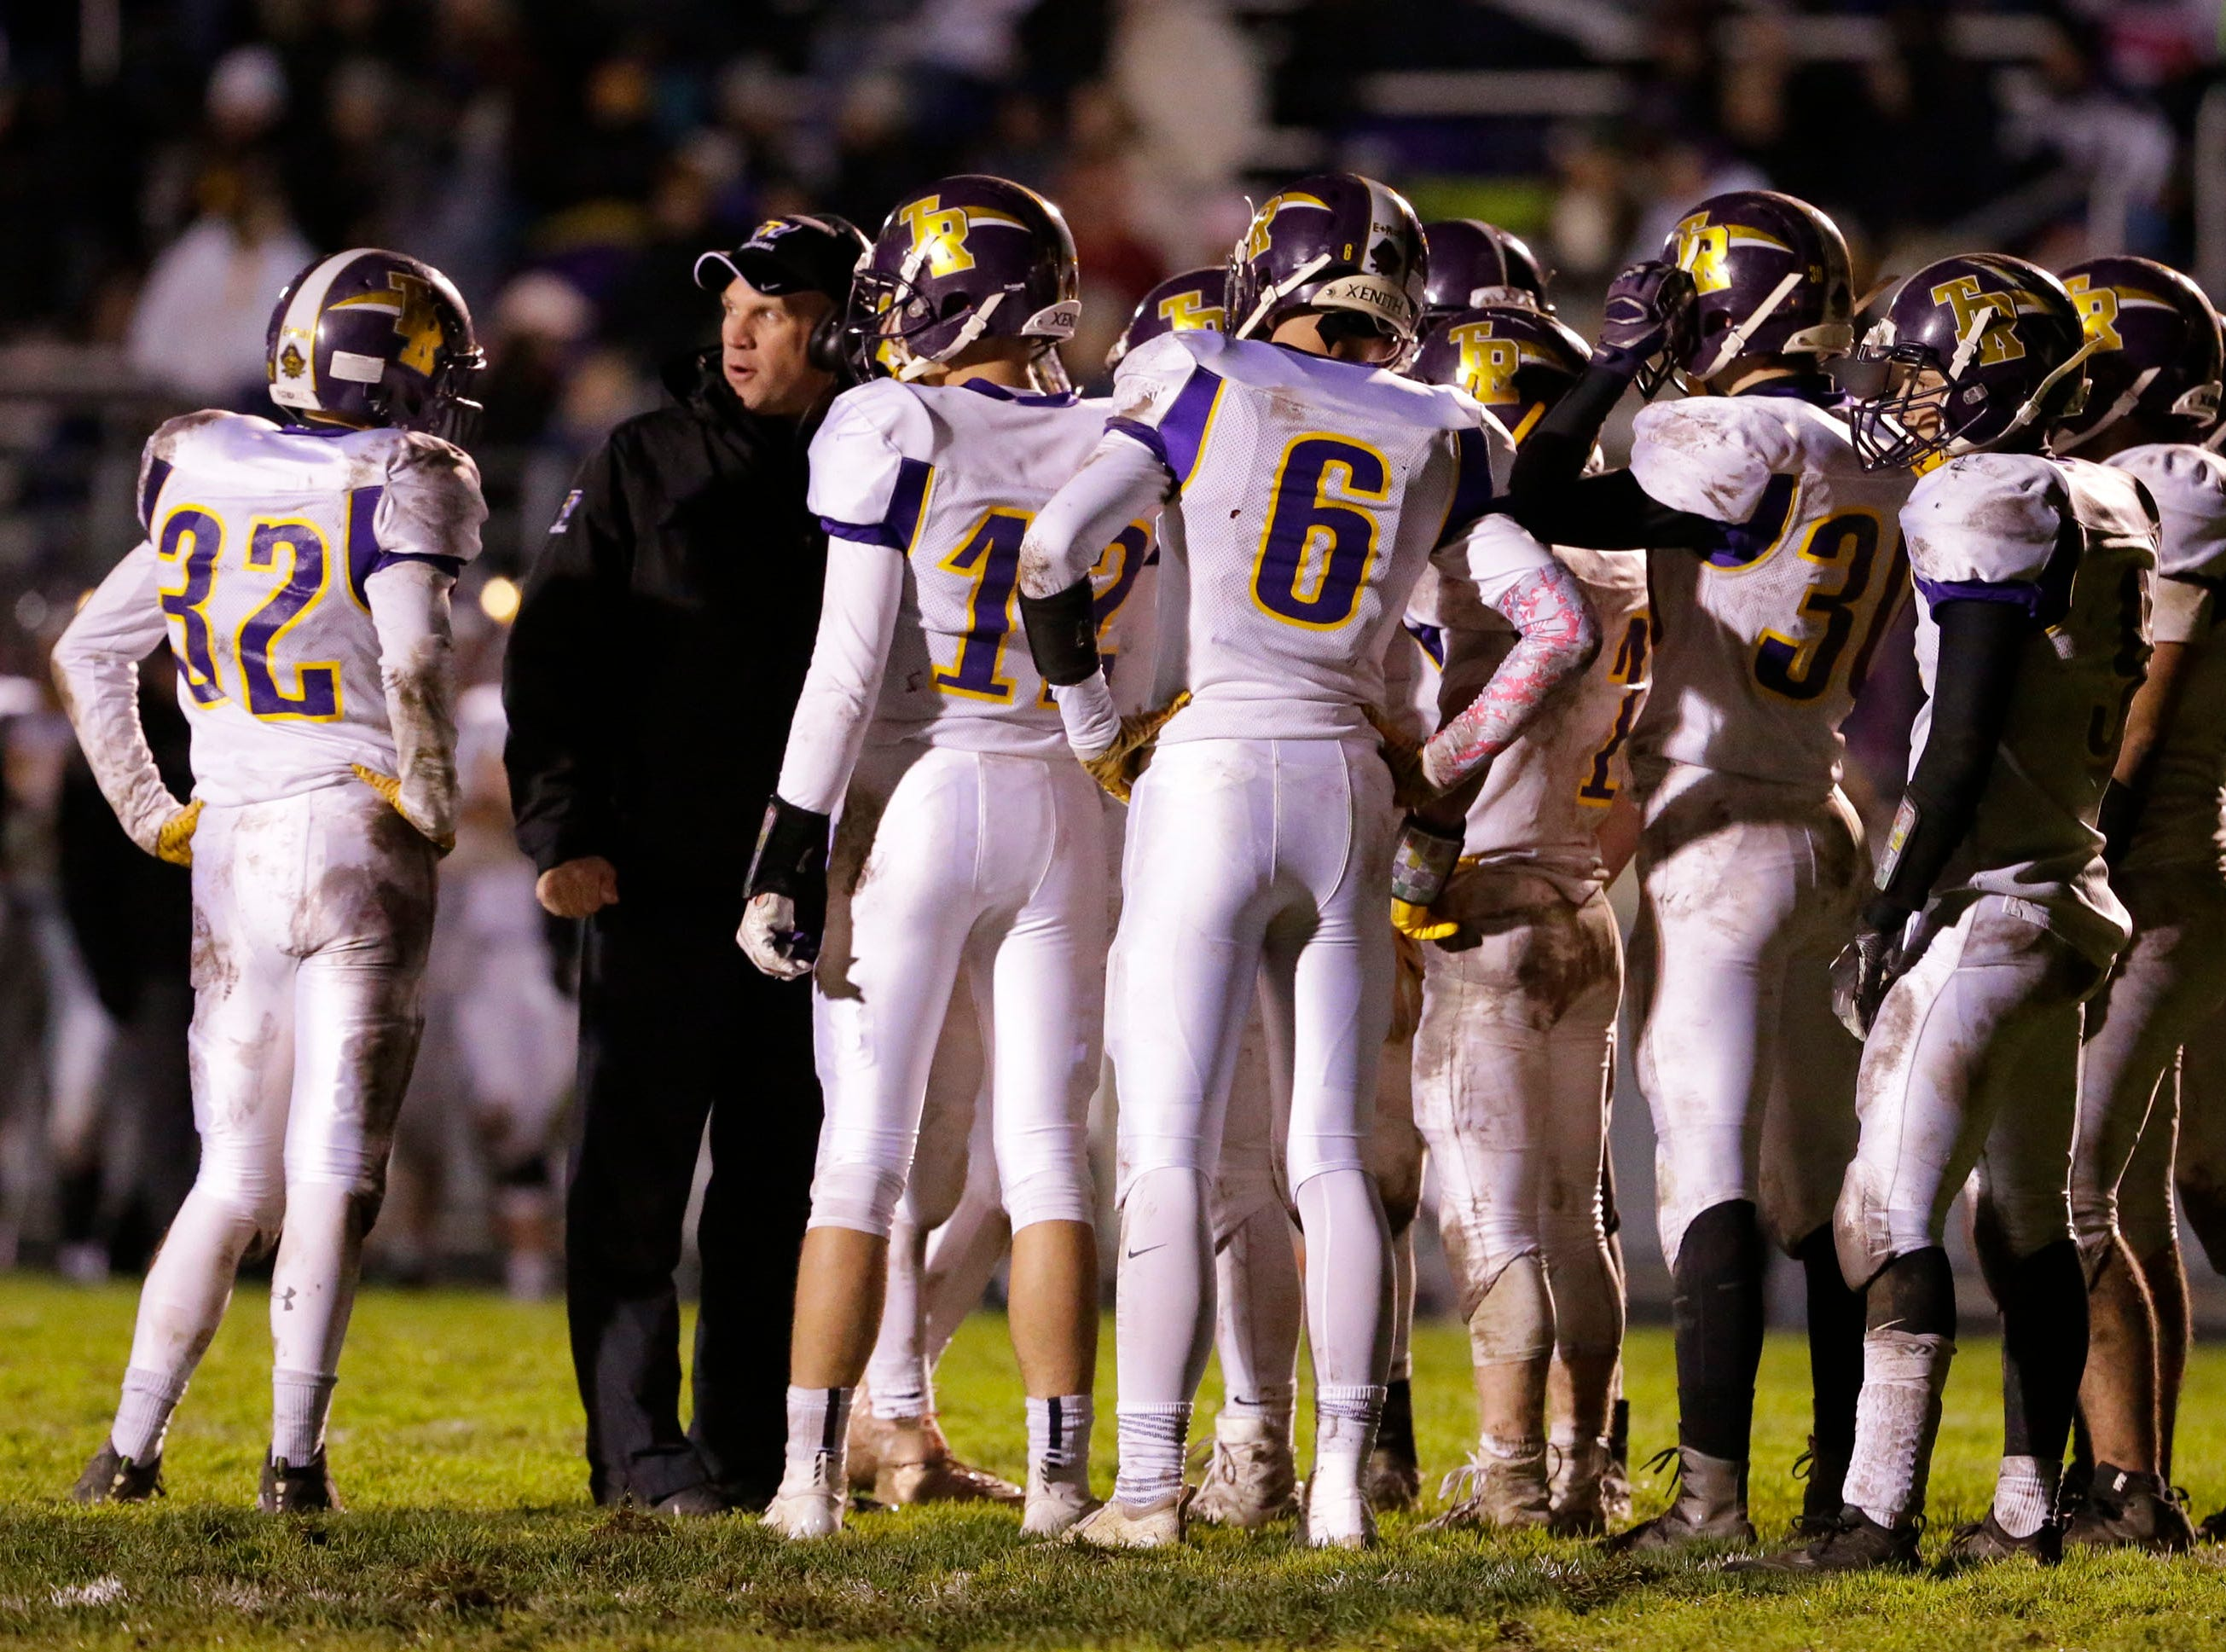 Two Rivers' coach Kevin Shillcox, left, talks strategy with his team against Sheboygan Falls, Friday, October 12, 2018, in Sheboygan Falls, Wis.